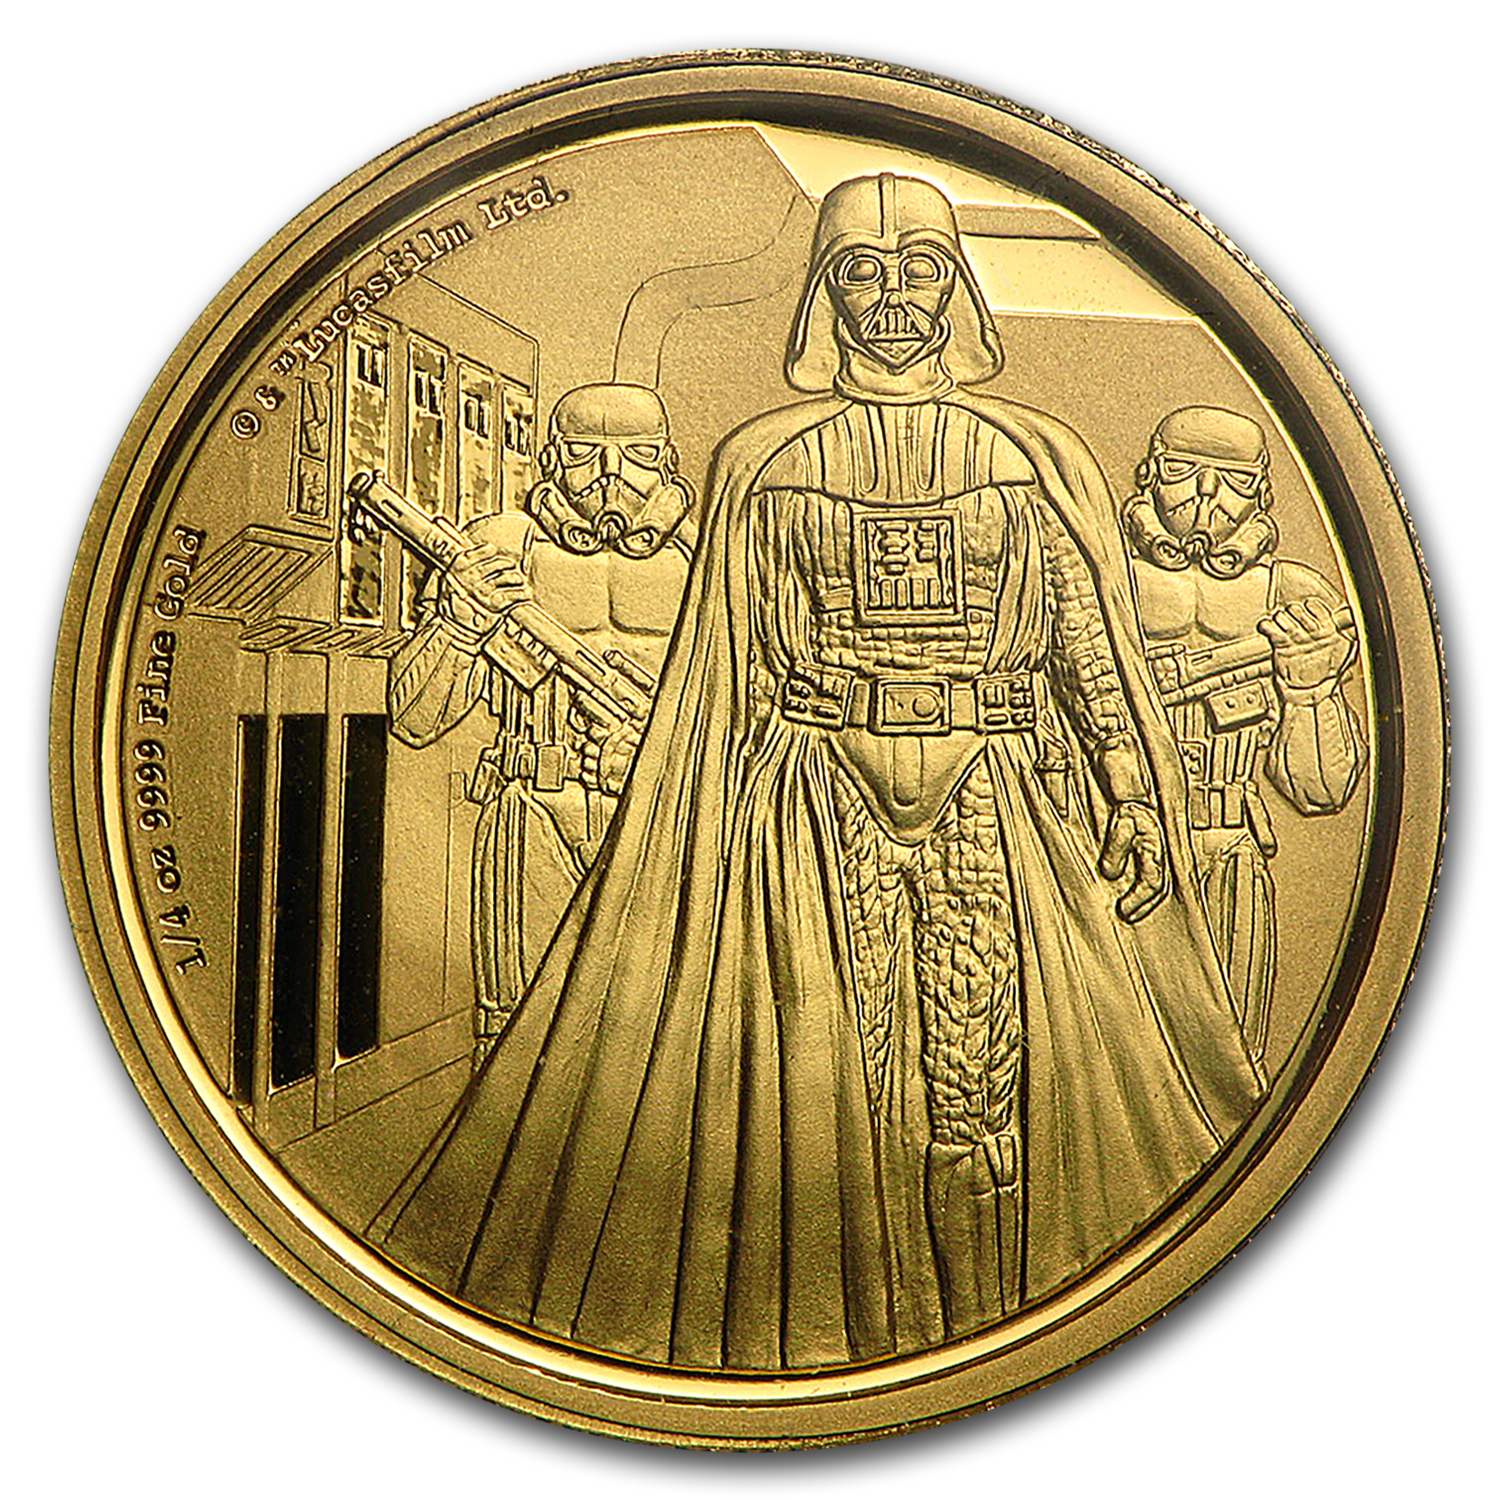 2016 Niue 1/4 oz Gold $25 Star Wars Darth Vader Proof (Box & COA)